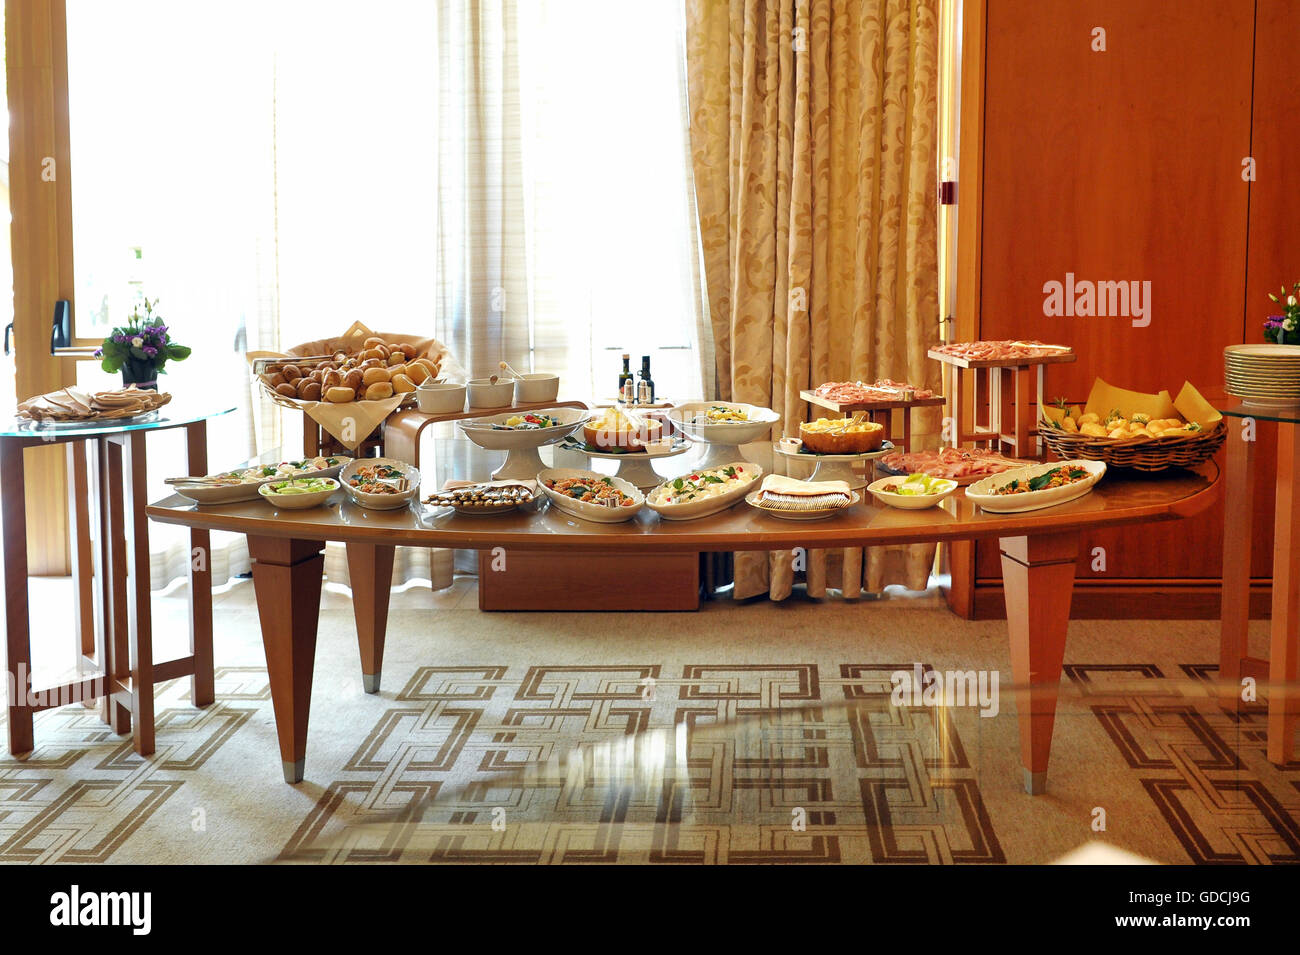 Buffet table laden with a selection of food in a restaurant or hotel with cold mets, fish and salads in front of - Stock Image